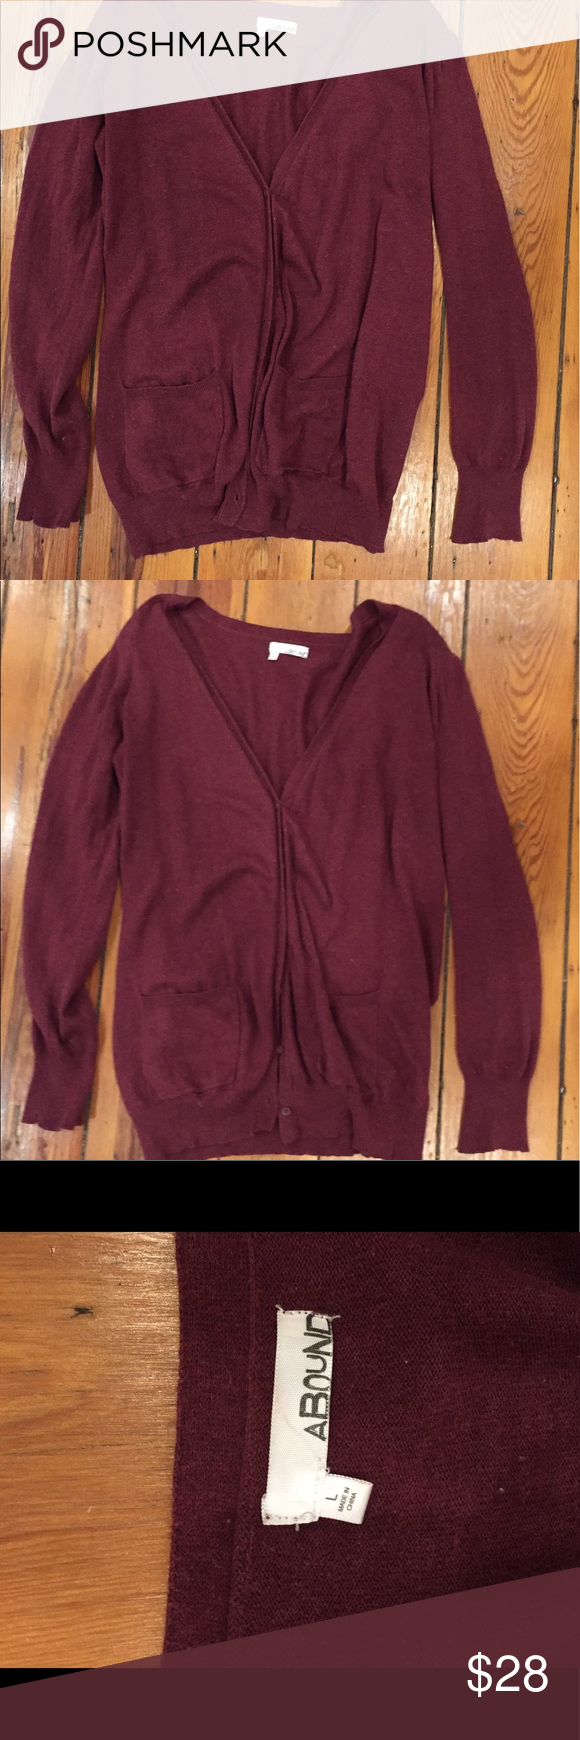 Maroon grandfather cardigan from Nordstrom | Maroon cardigan and ...